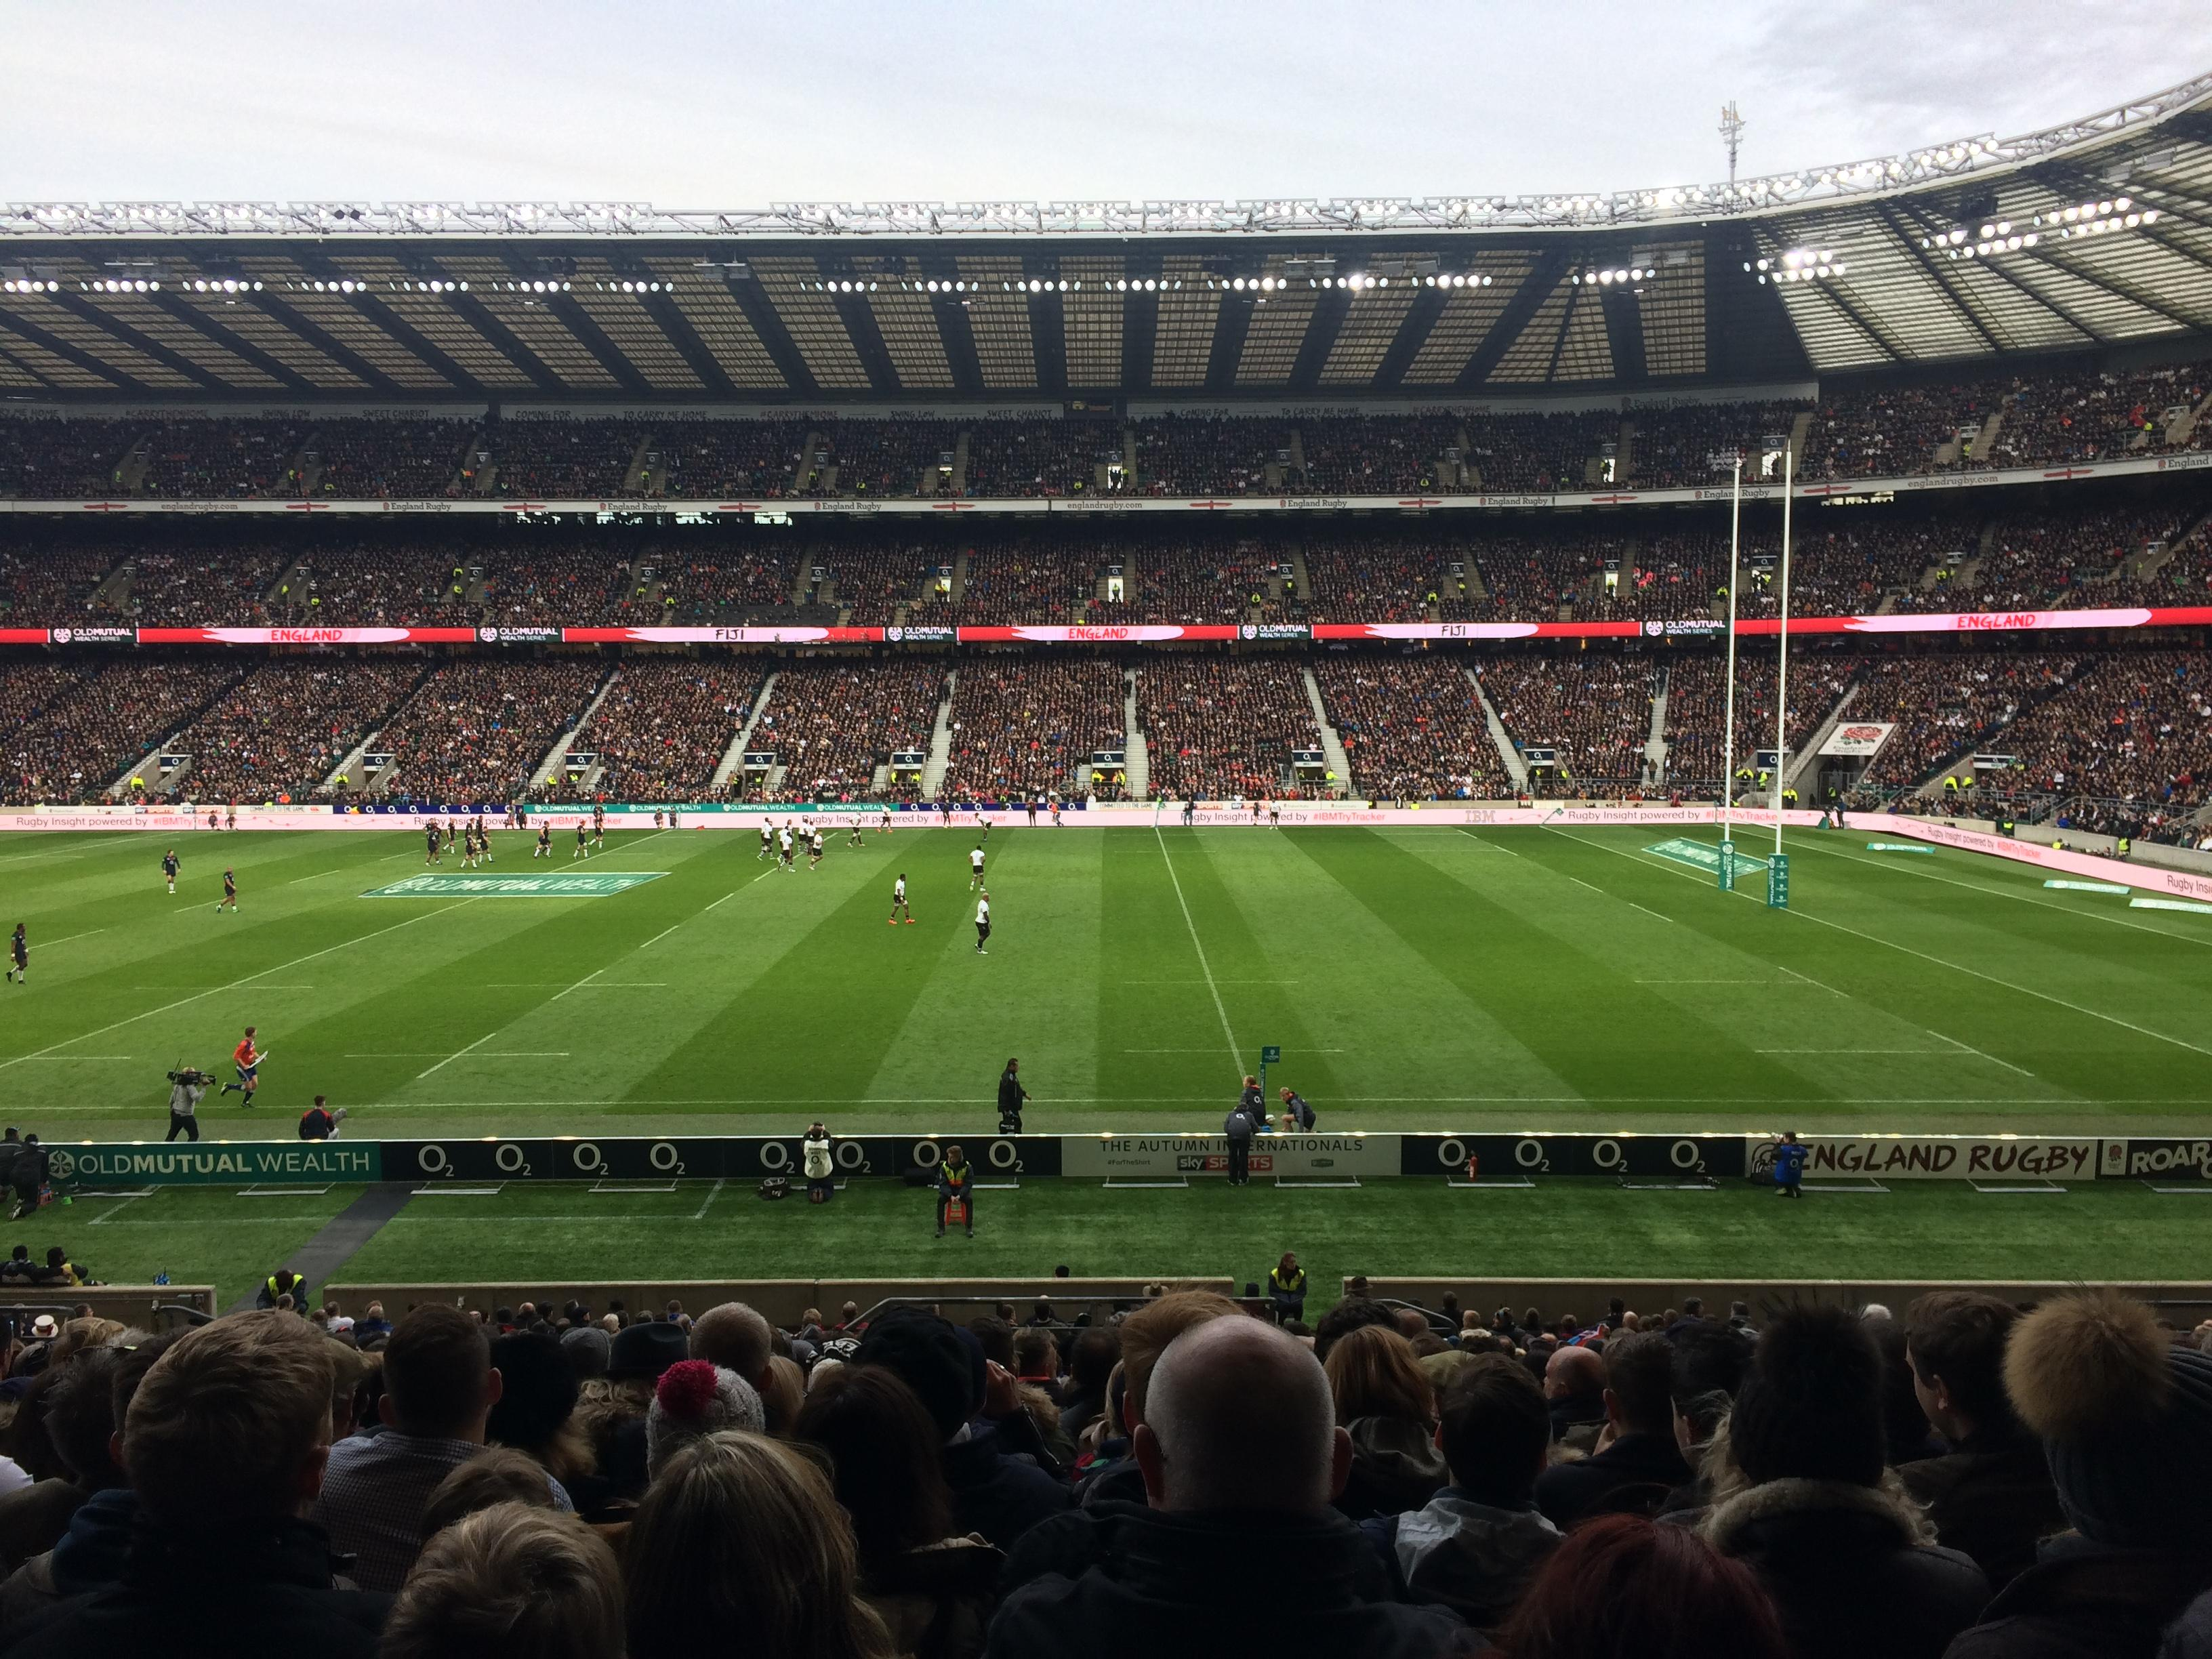 Twickenham Stadium Section L4 Row 34 Seat 200